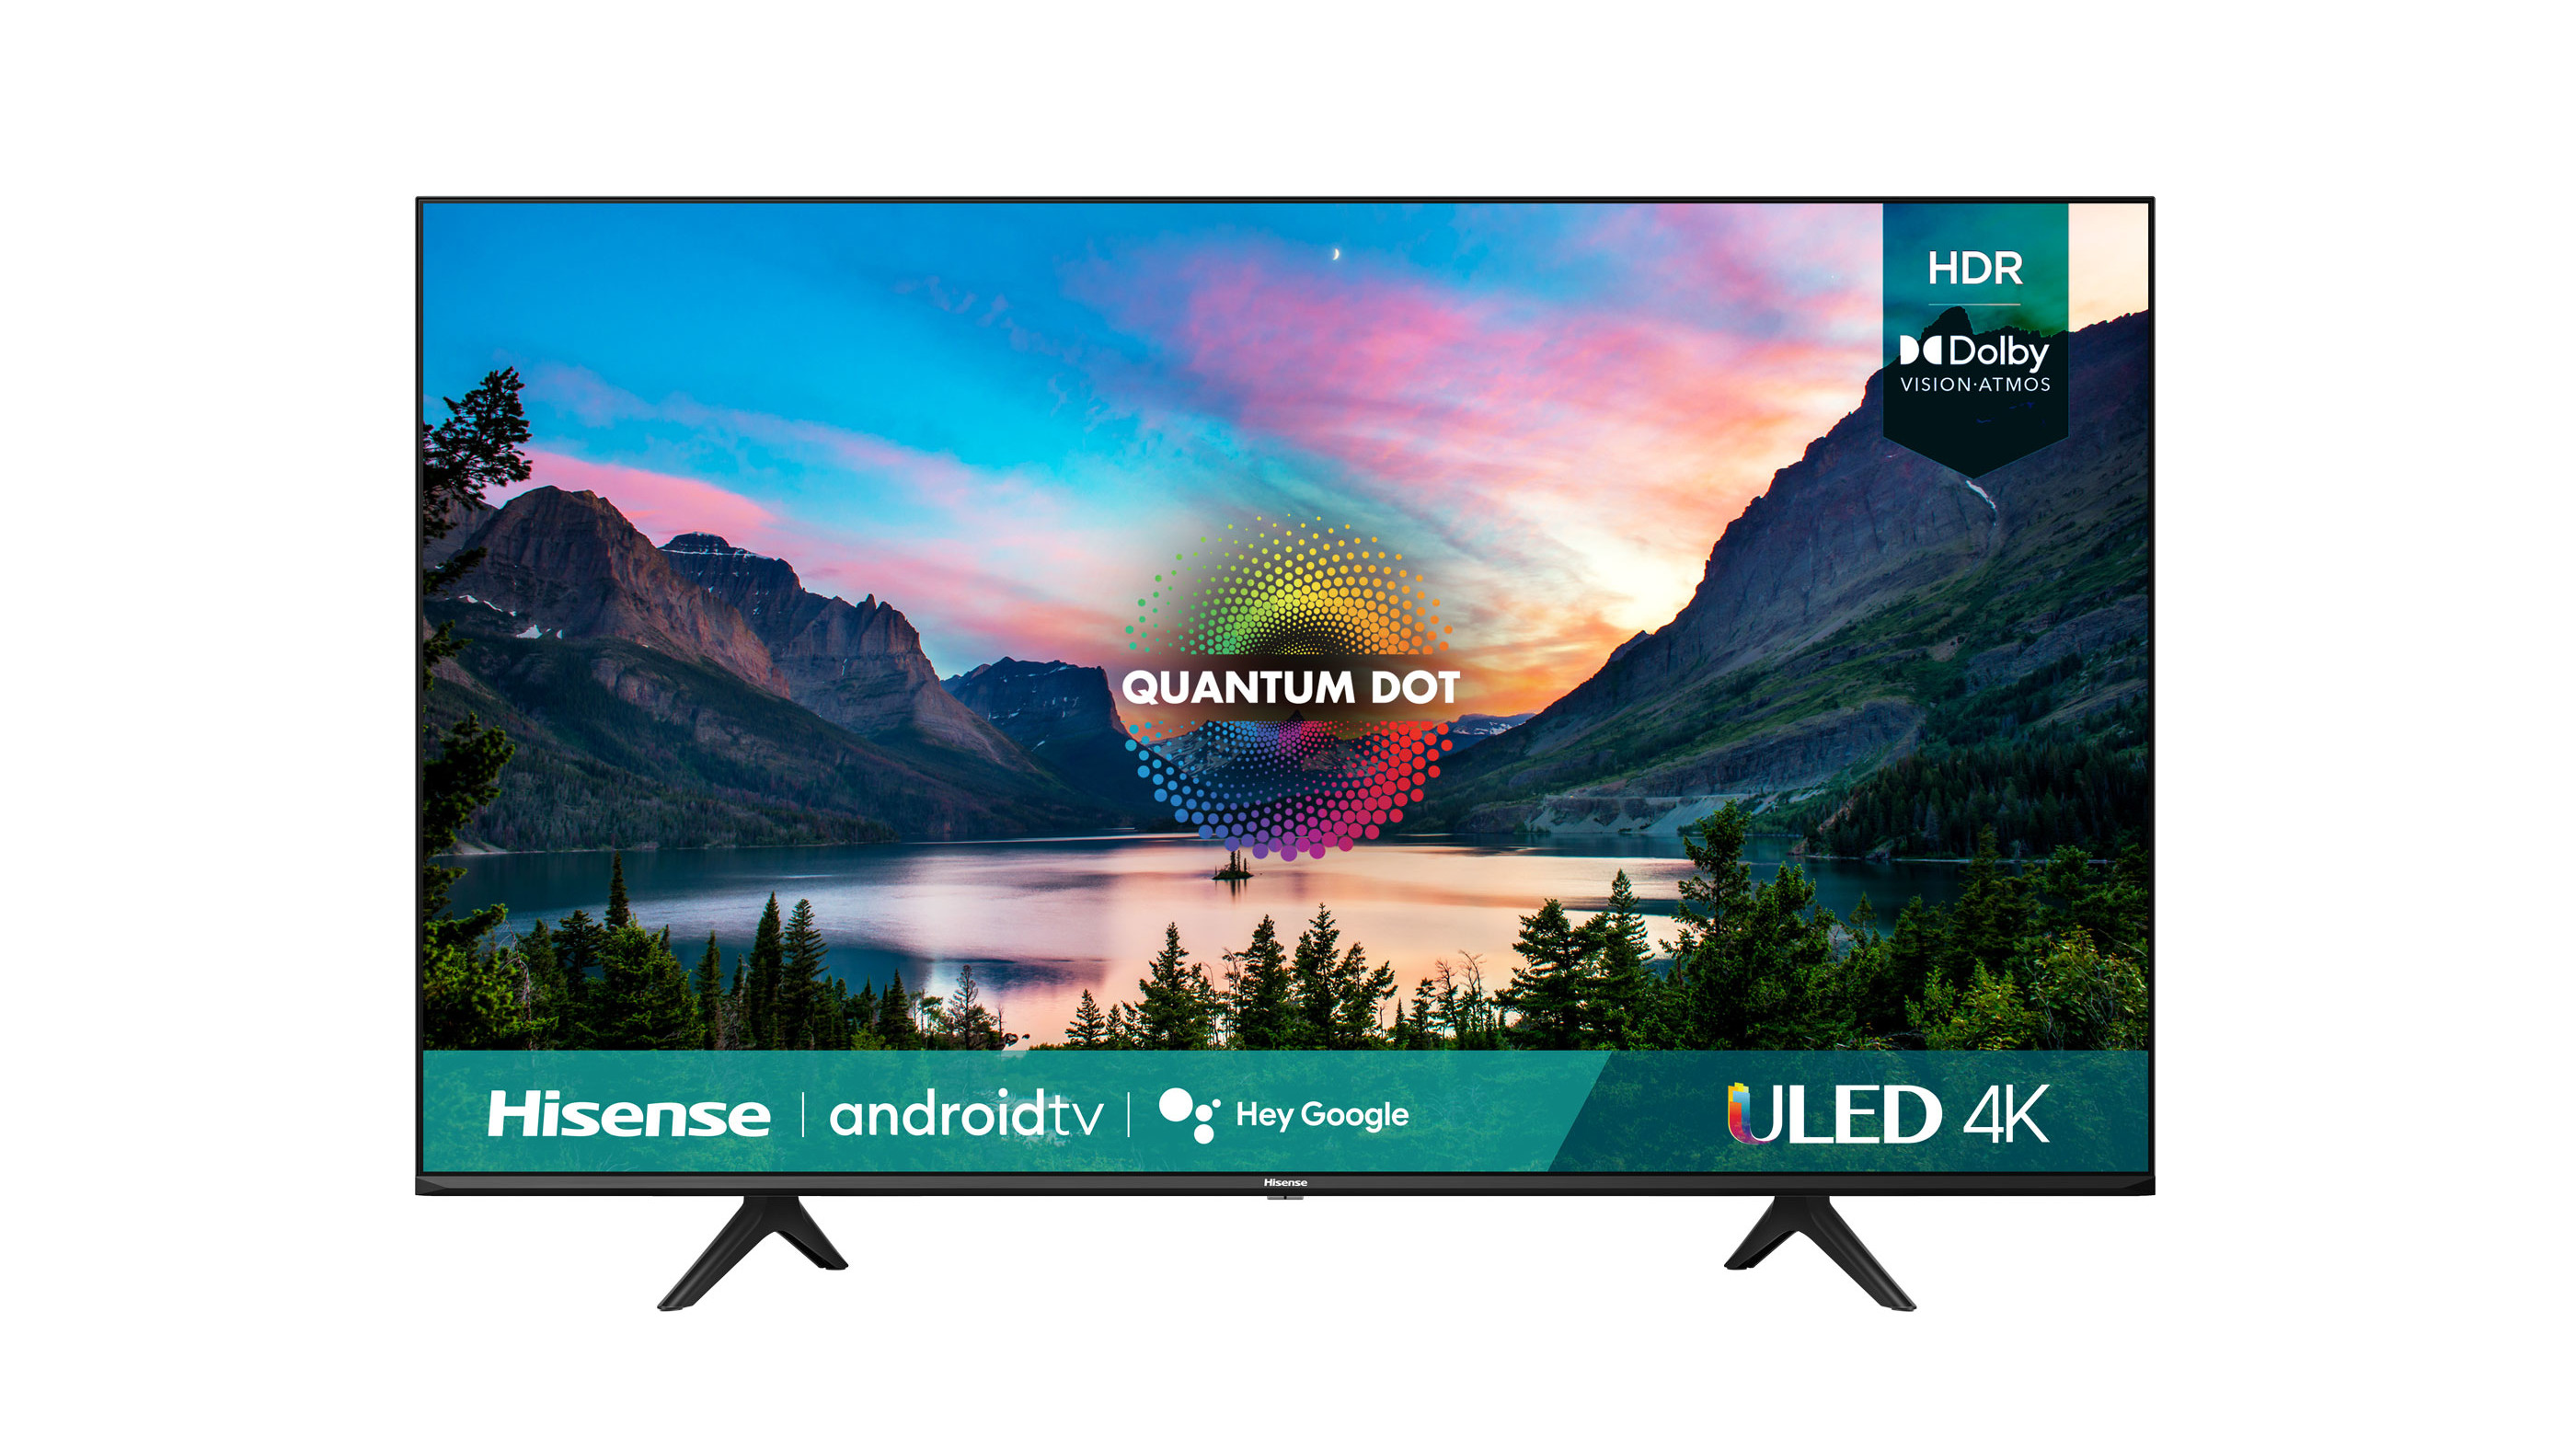 Another frontal view of the Hisense U6G ULED TV